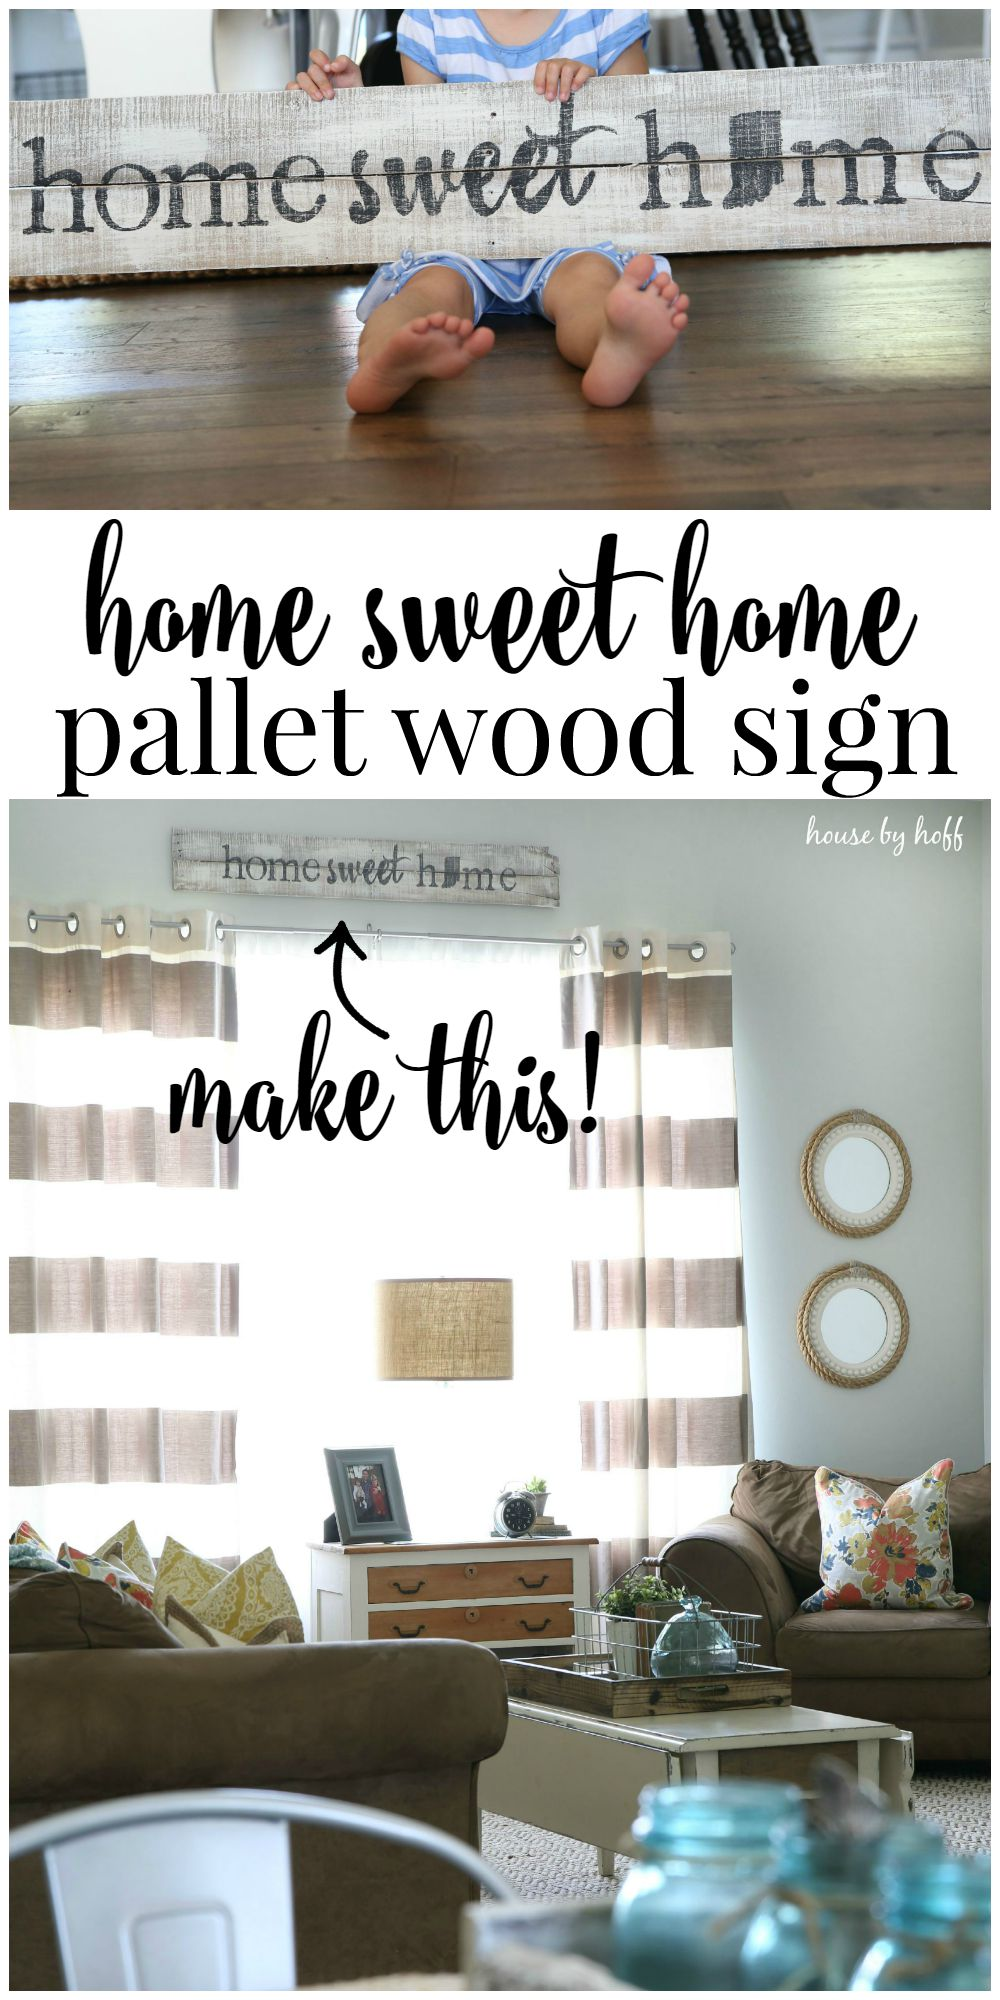 Pallet Wood Sign Home Sweet Home House By Hoff